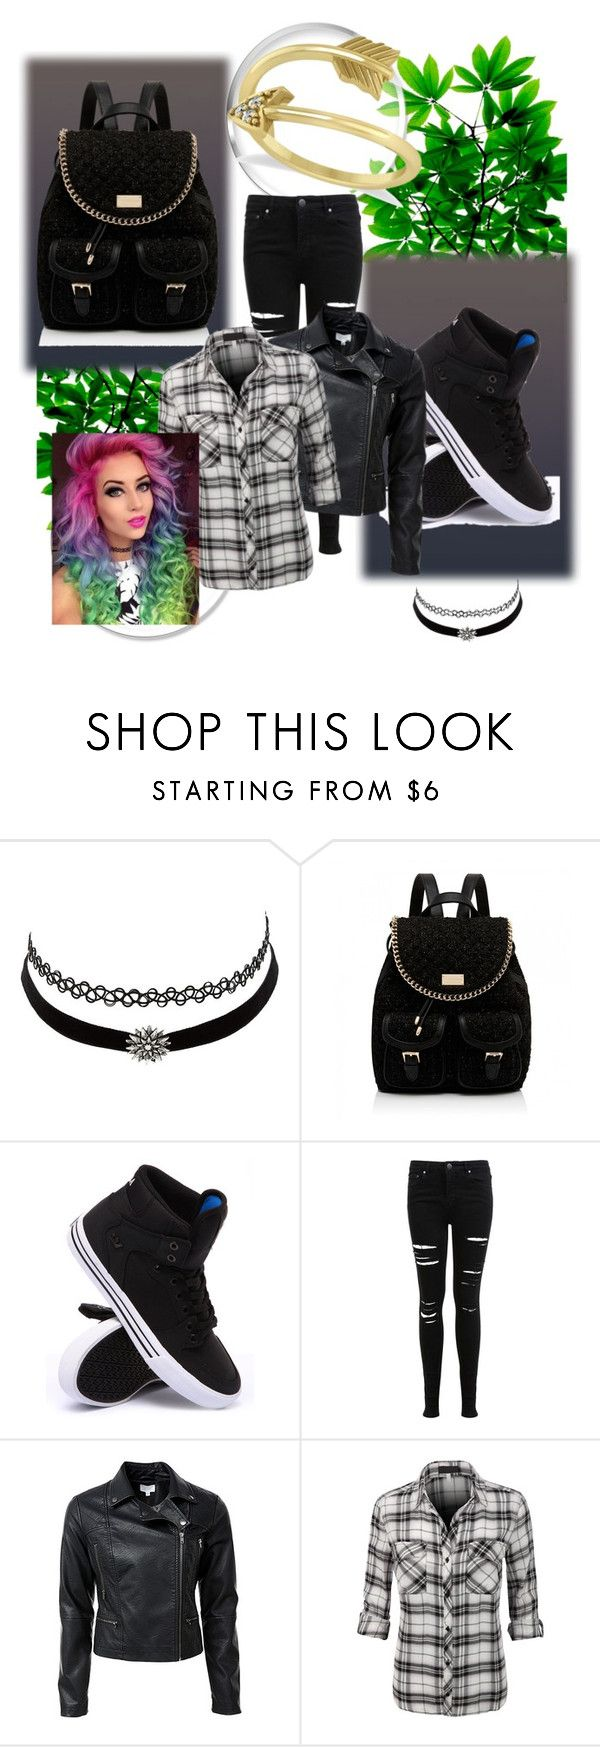 """mujer rockera ropa"" by tyciasilva ❤ liked on Polyvore featuring Charlotte Russe, Forever New, Supra, Miss Selfridge and Allurez"